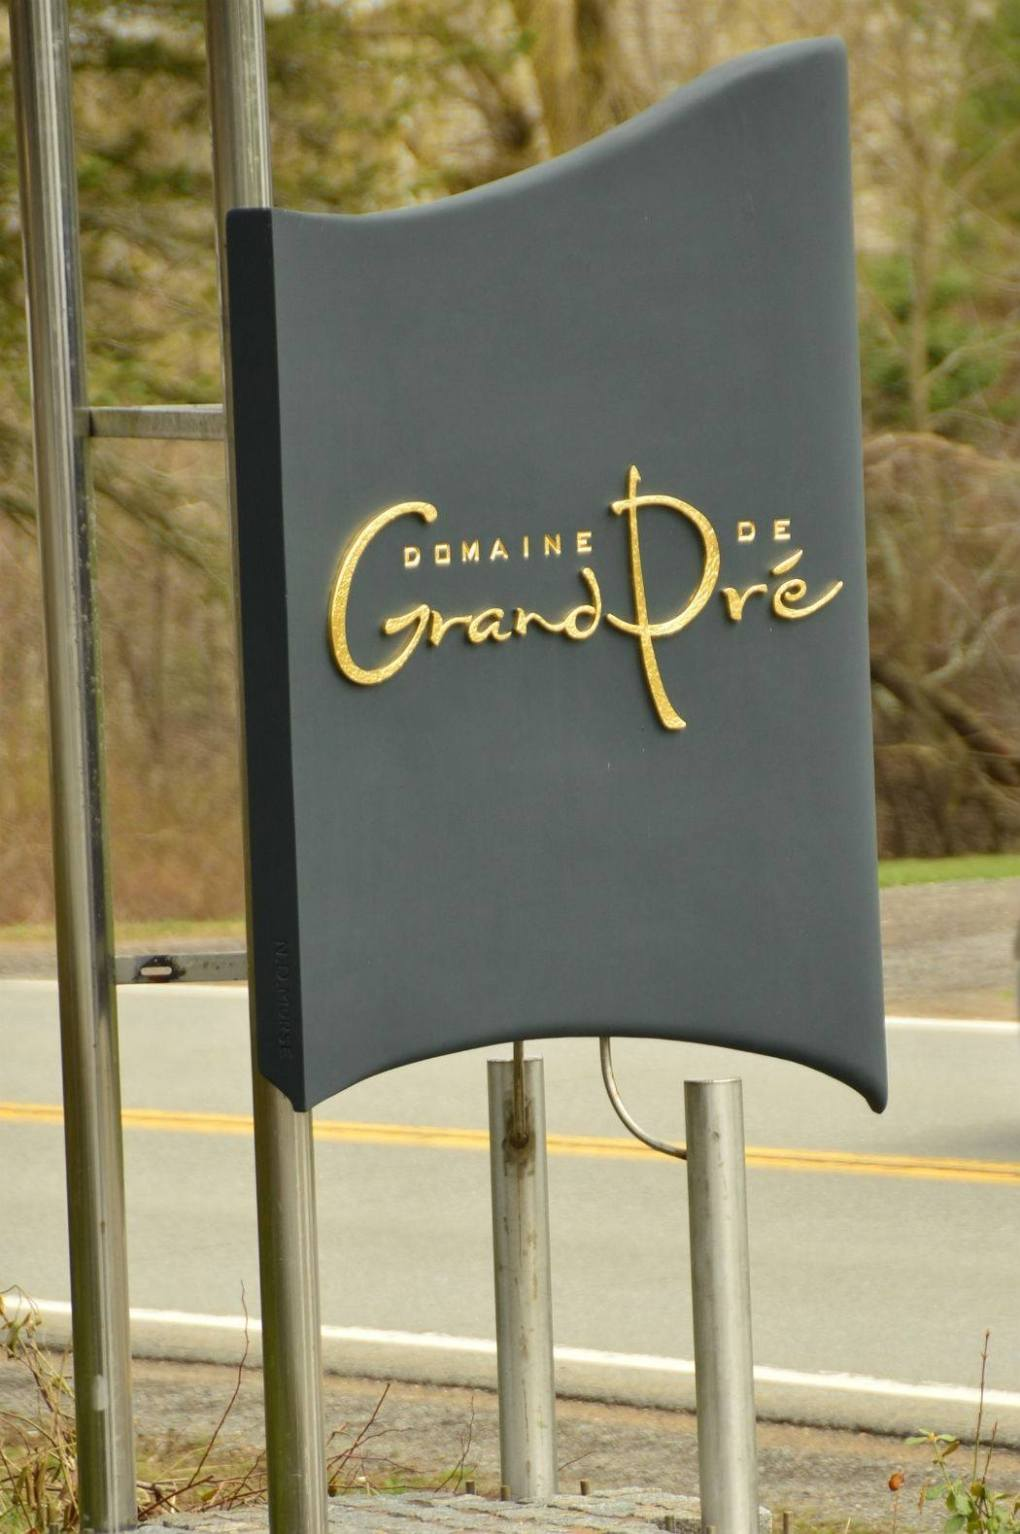 sign for domaine de grand pre winery